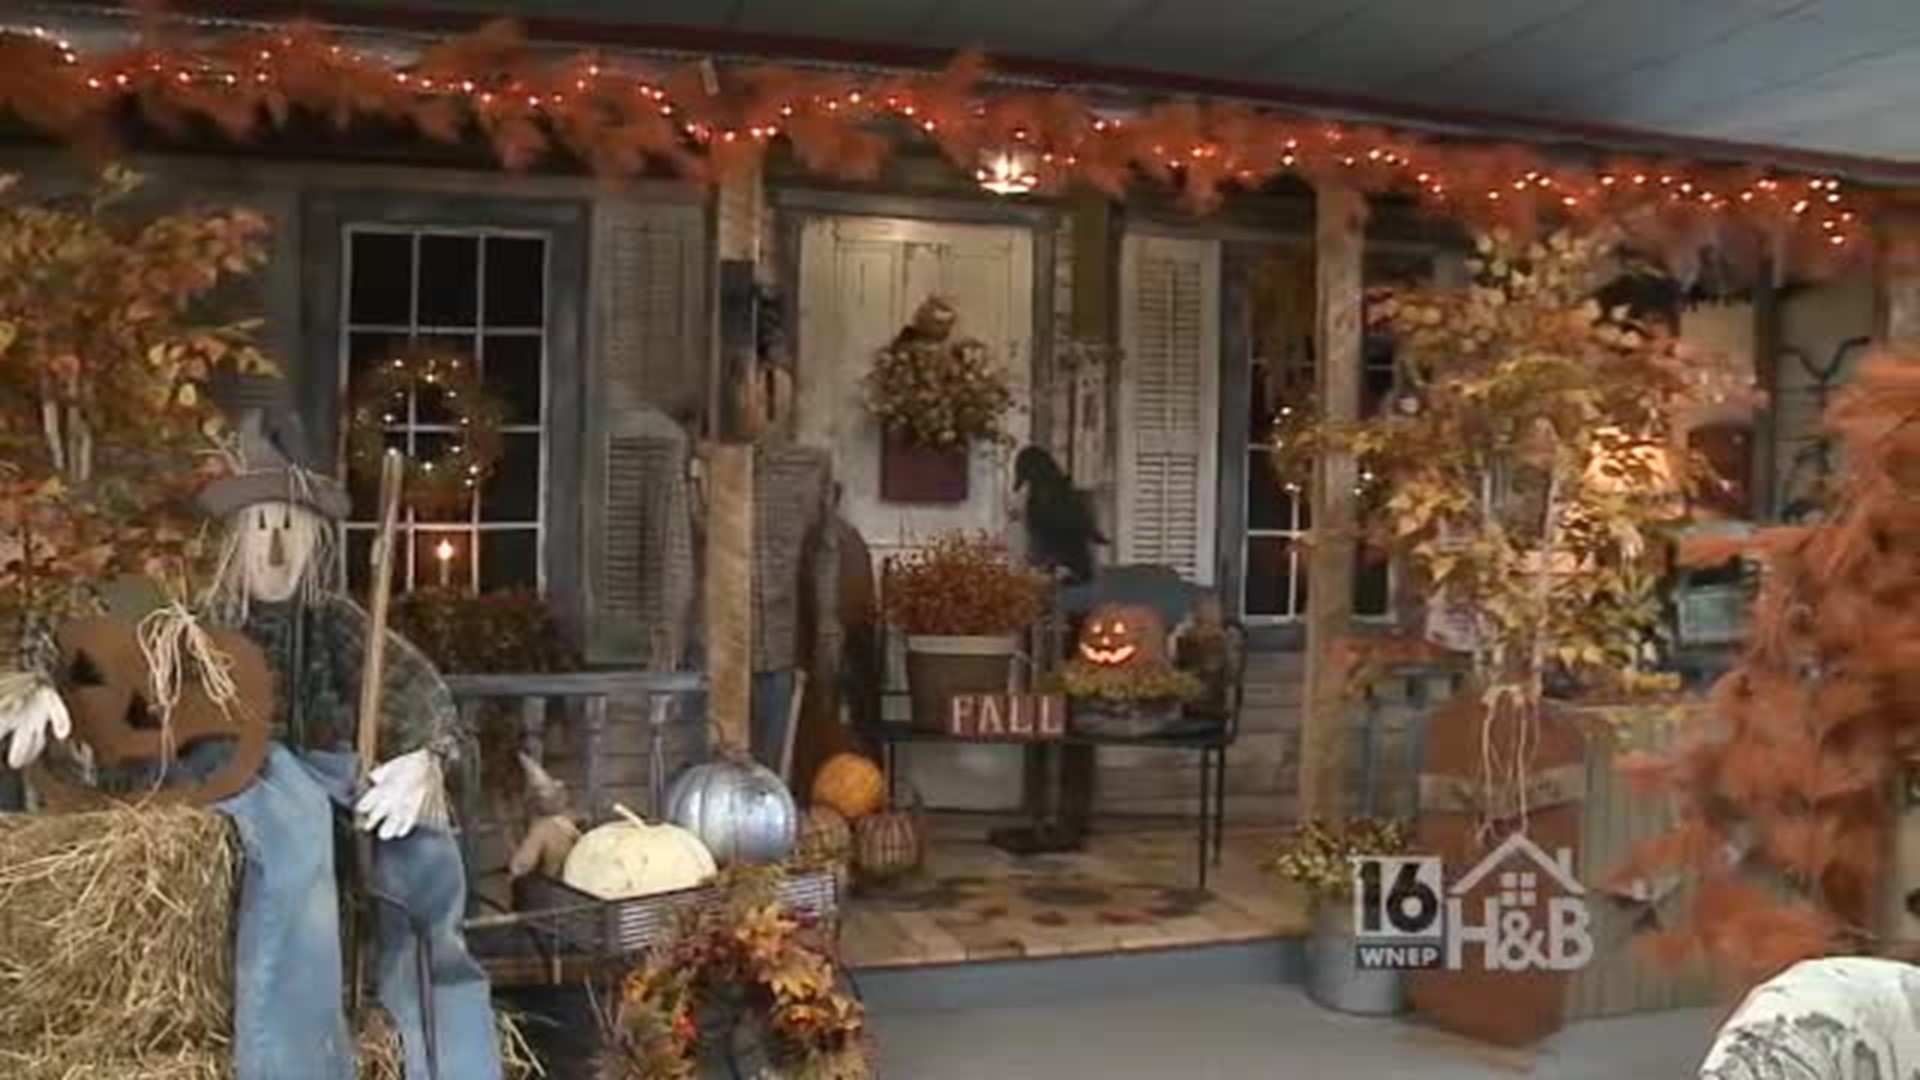 Fall Decorating Ideas by the Decorating Center | wnep.com